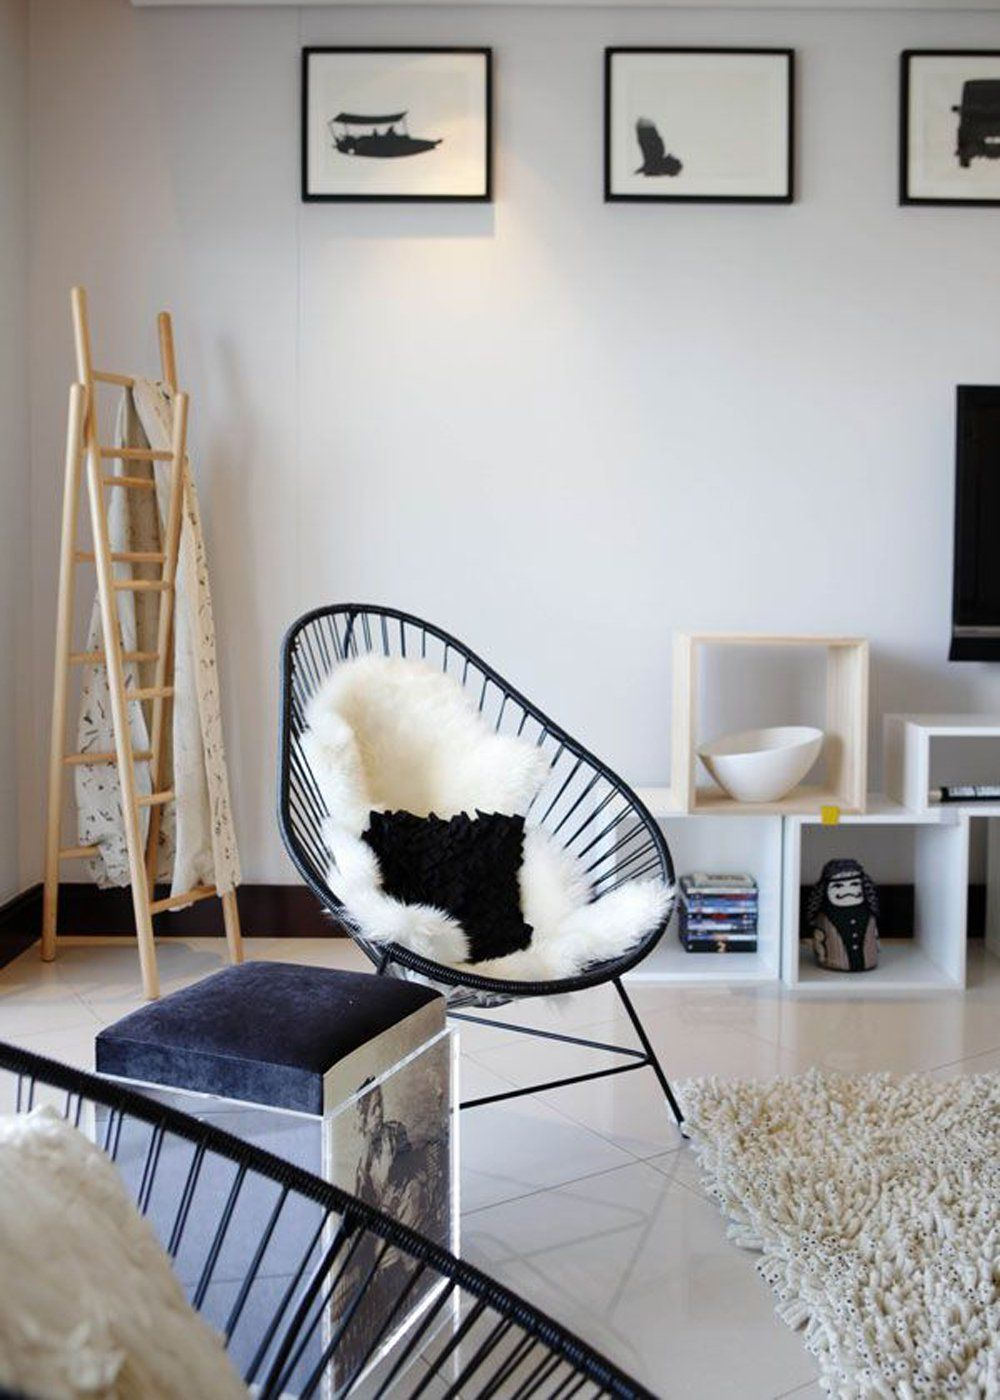 Comment Relooker Son Fauteuil Acapulco Salons And Room - Fauteuil acapulco noir